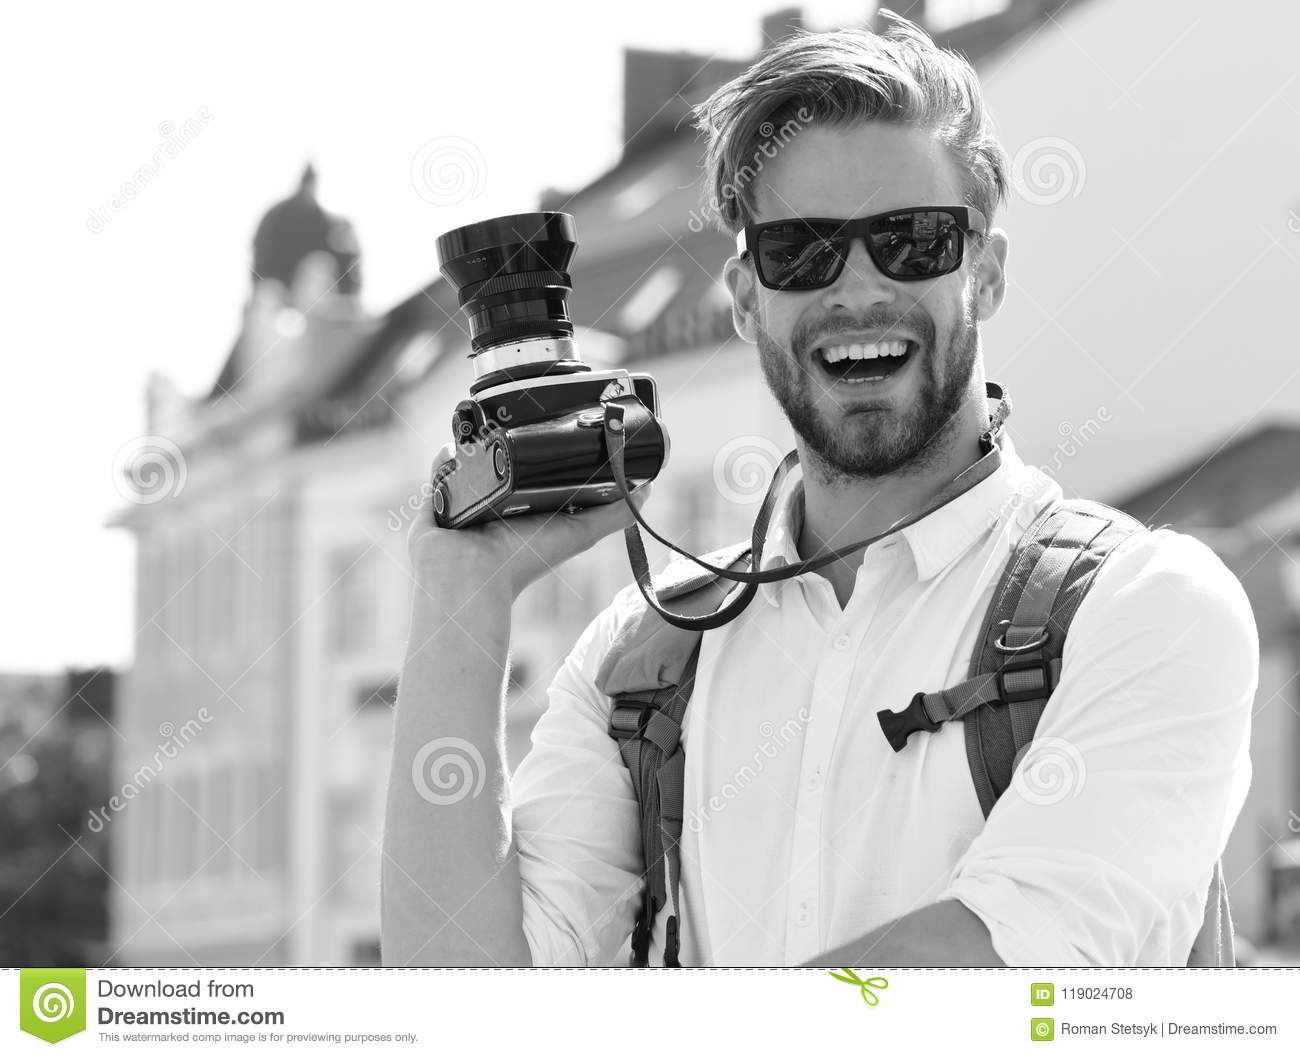 Urban photo and travelling concept. Tourist takes picture of cityscape. Young traveller or photographer